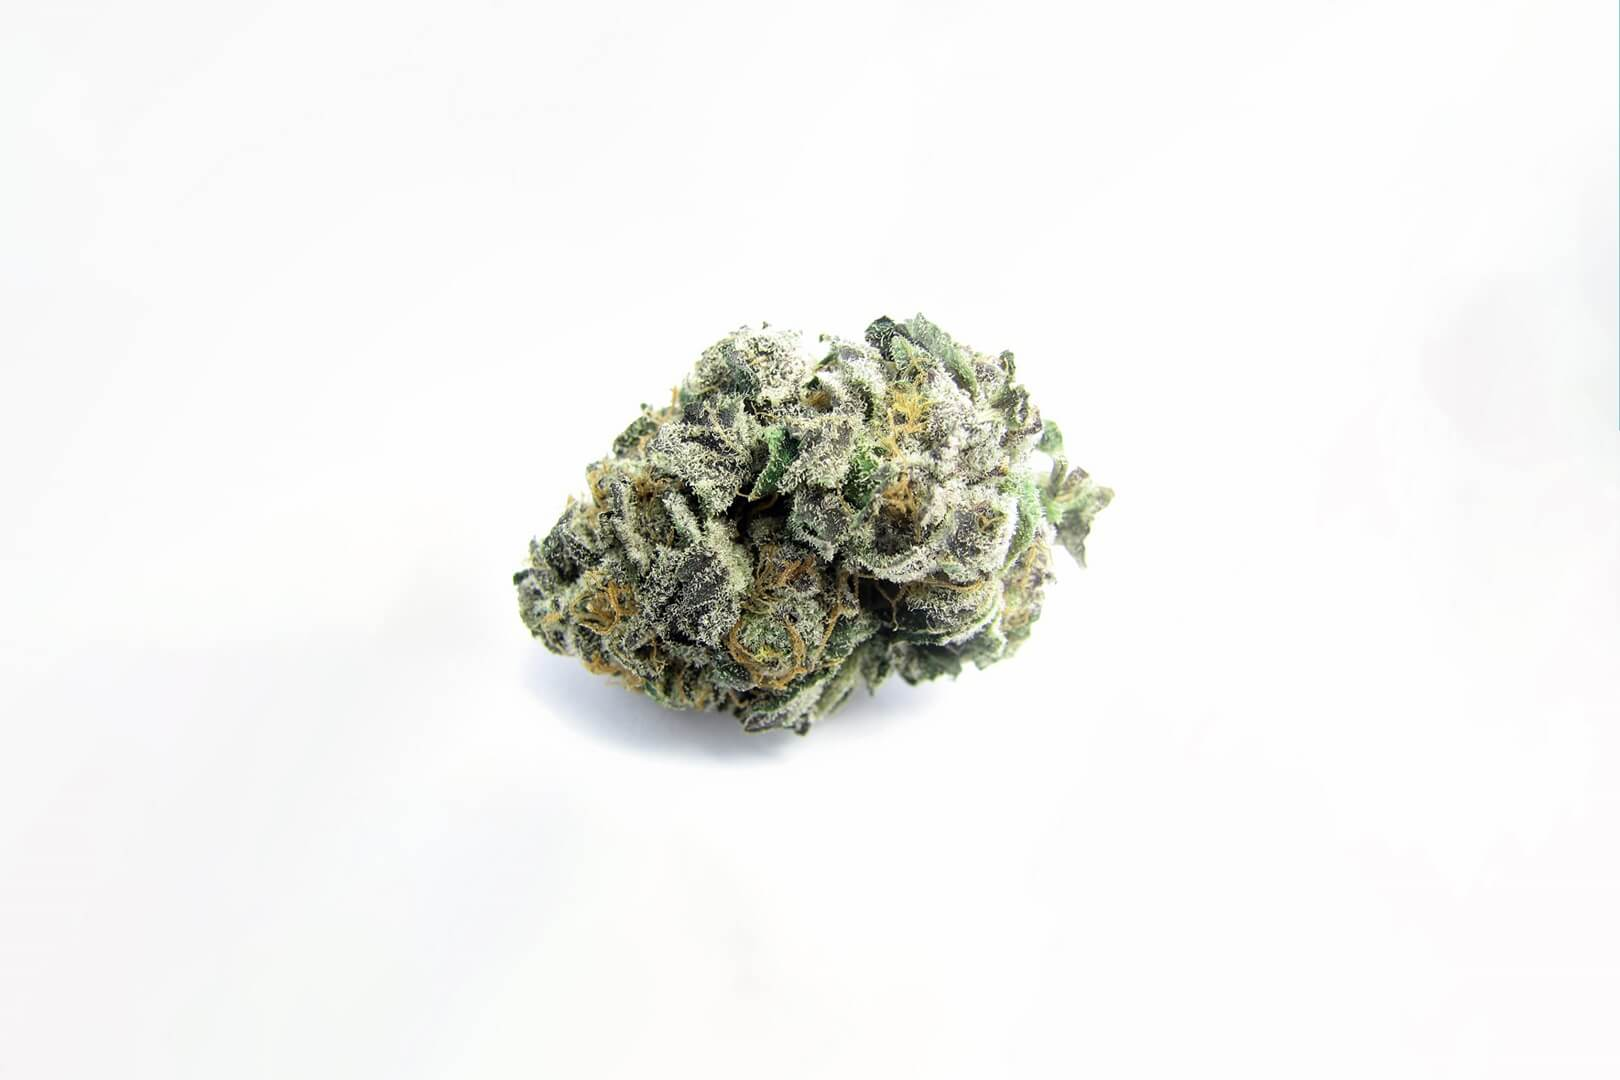 Girl Scout Cookies strain photo 3